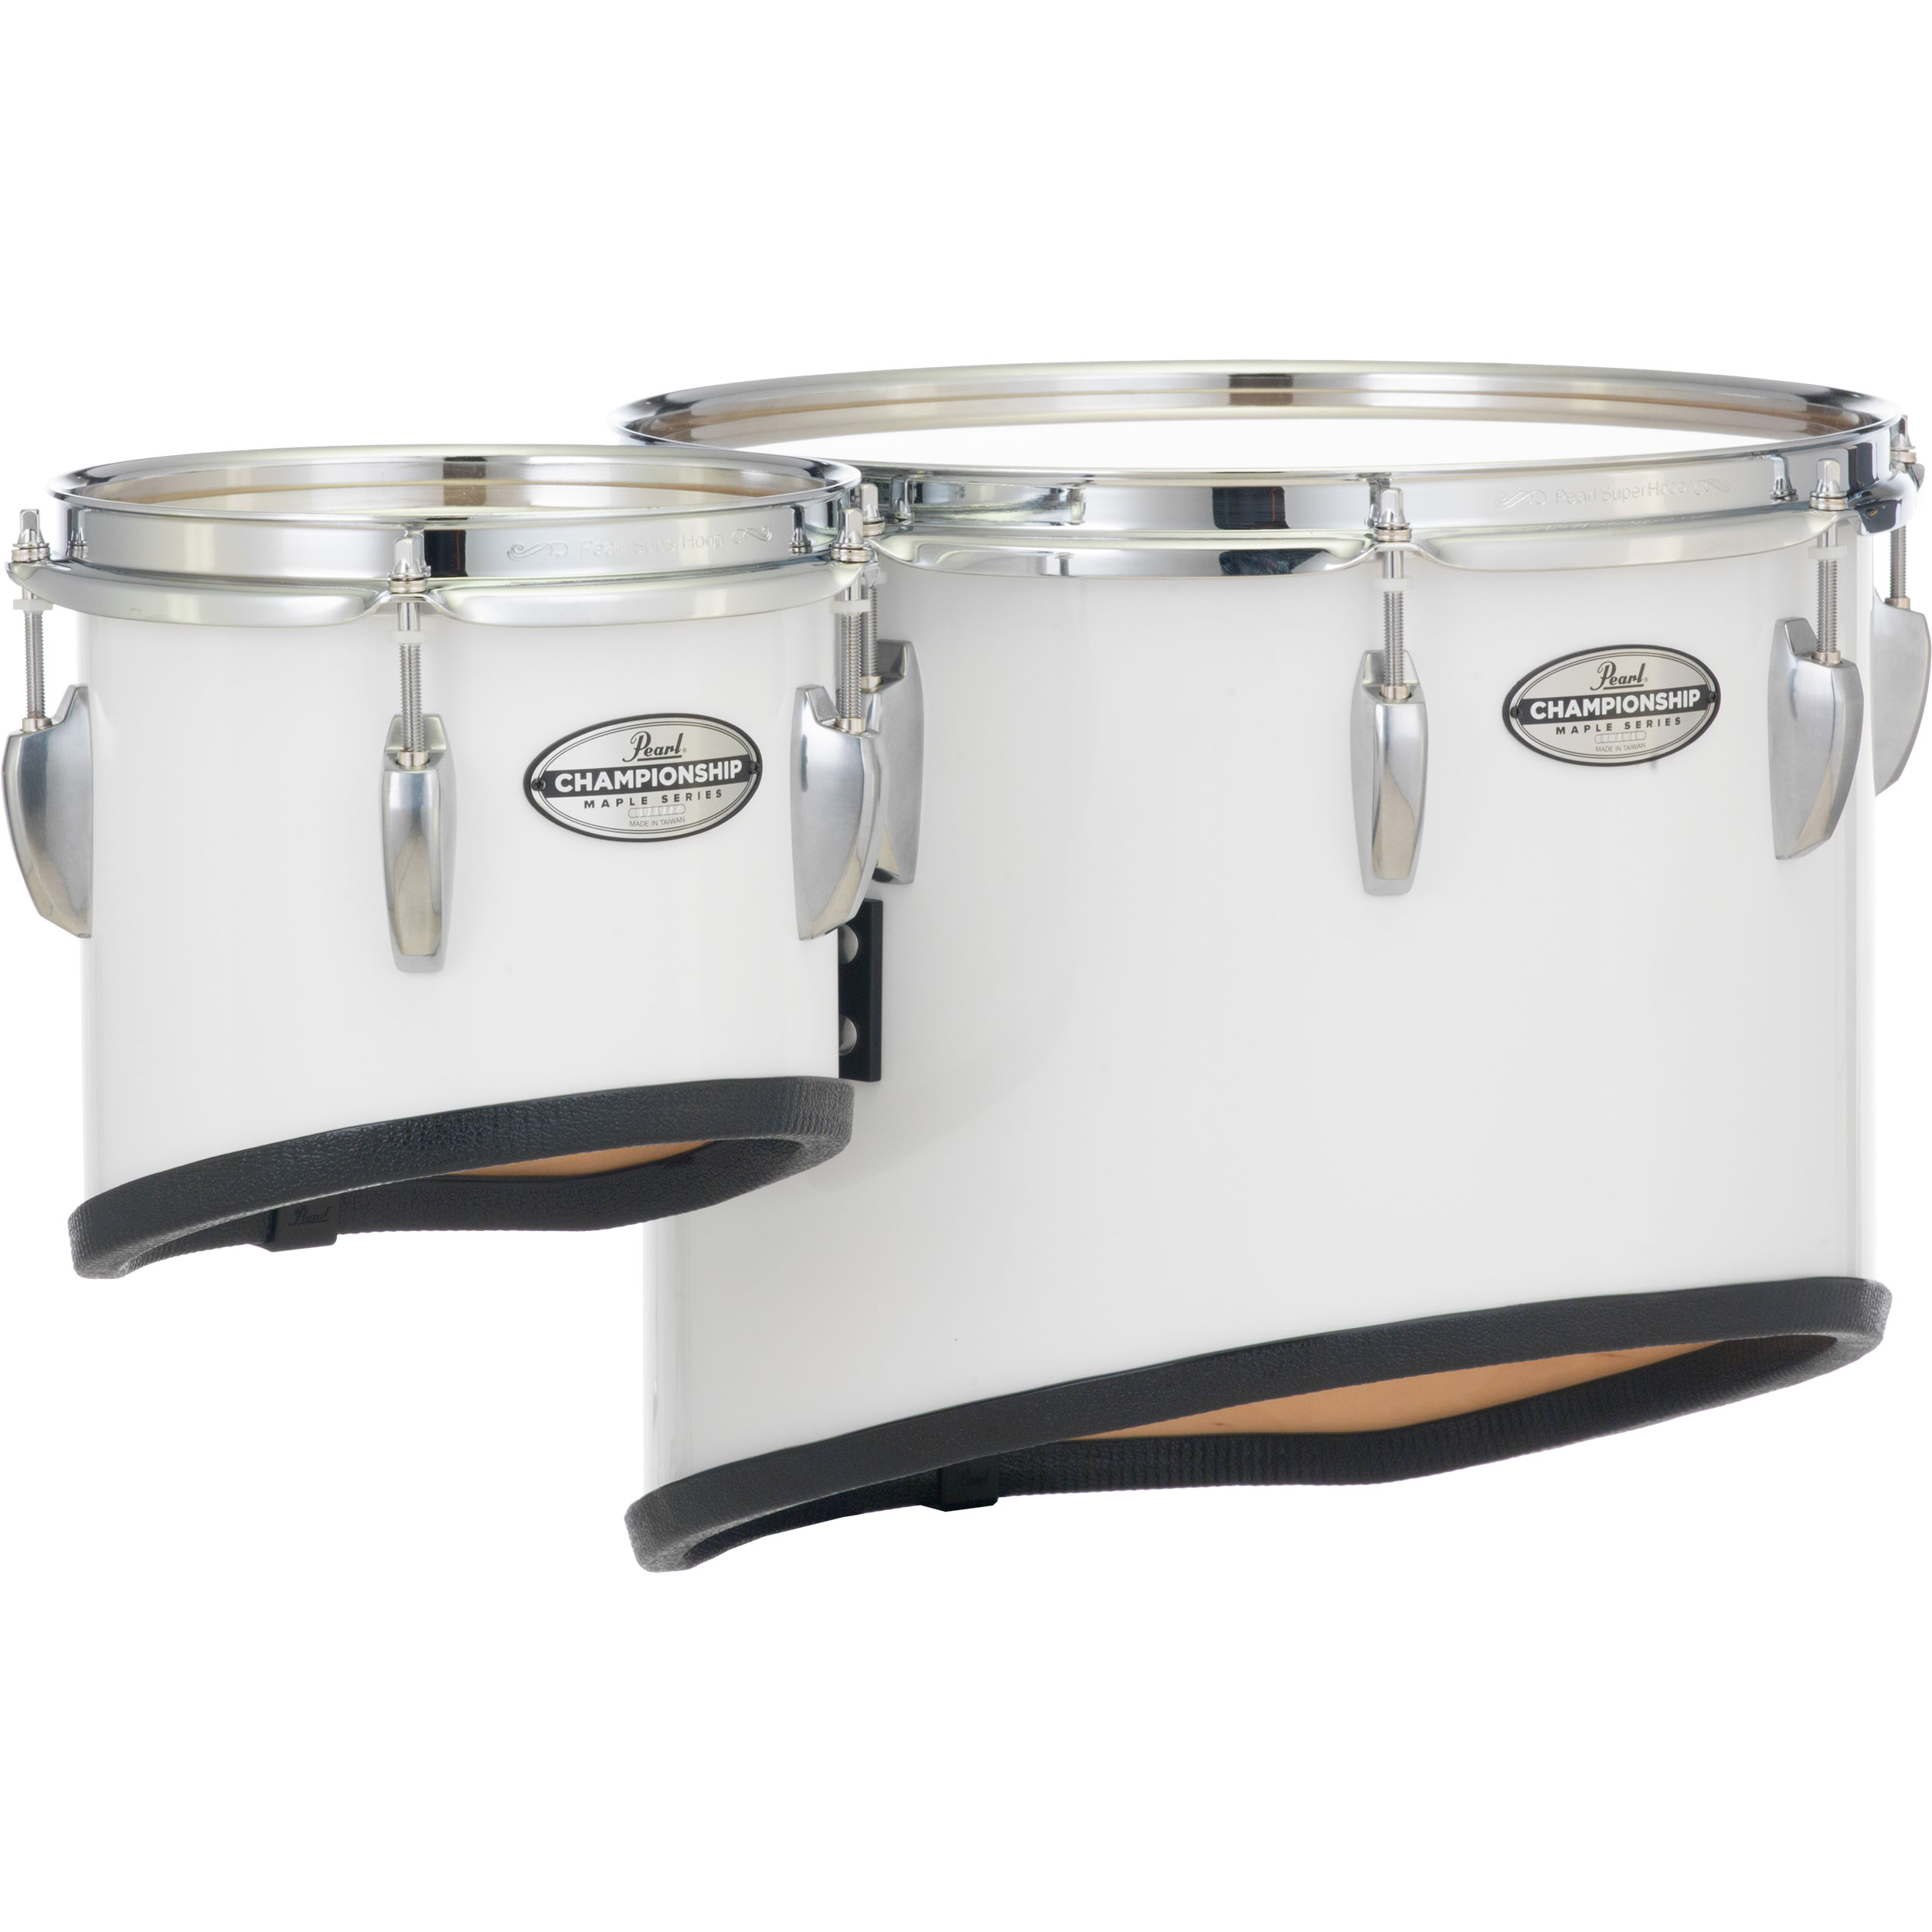 """Pearl 13"""" x 14"""" Championship Maple Sonic Cut Single Tenor with Mounts for CXS1 Carrier with Chrome Hardware (Specify Finish)"""